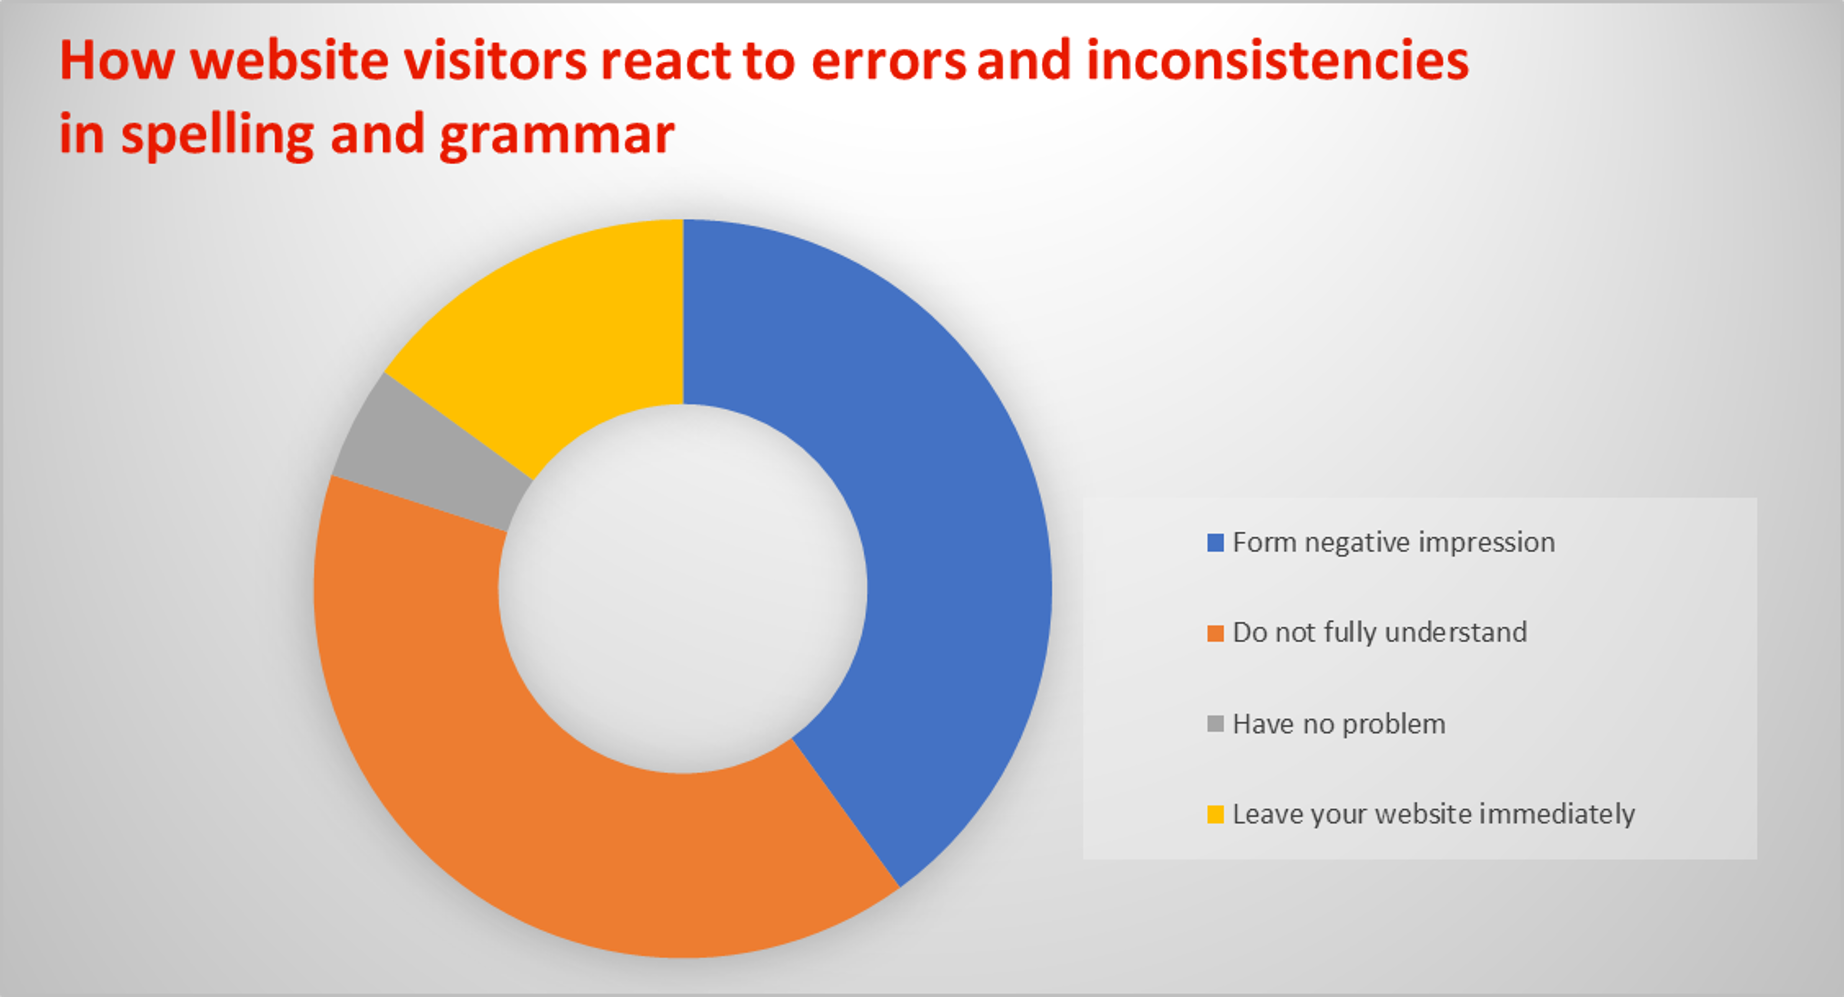 Chart showing how website visitors react to bad spelling and grammar: some people will leave the website; most will form a negative impression or not fully understand; very few will have no problem.